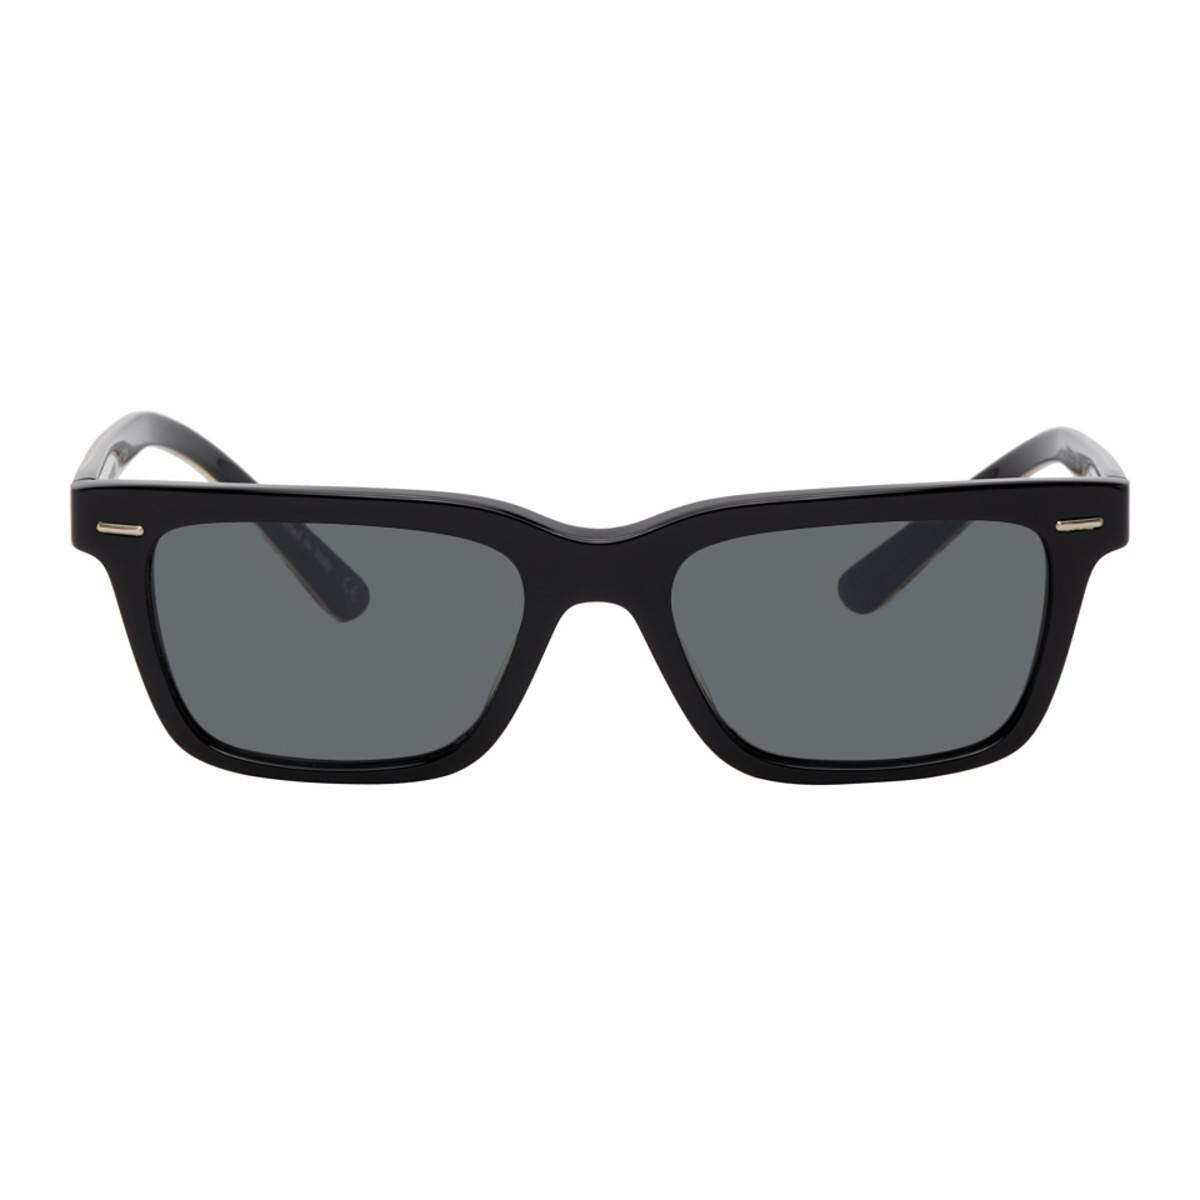 The Row Black and Gold Oliver Peoples Edition BA CC Glasses Ssense USA MEN Men ACCESSORIES Mens SUNGLASSES